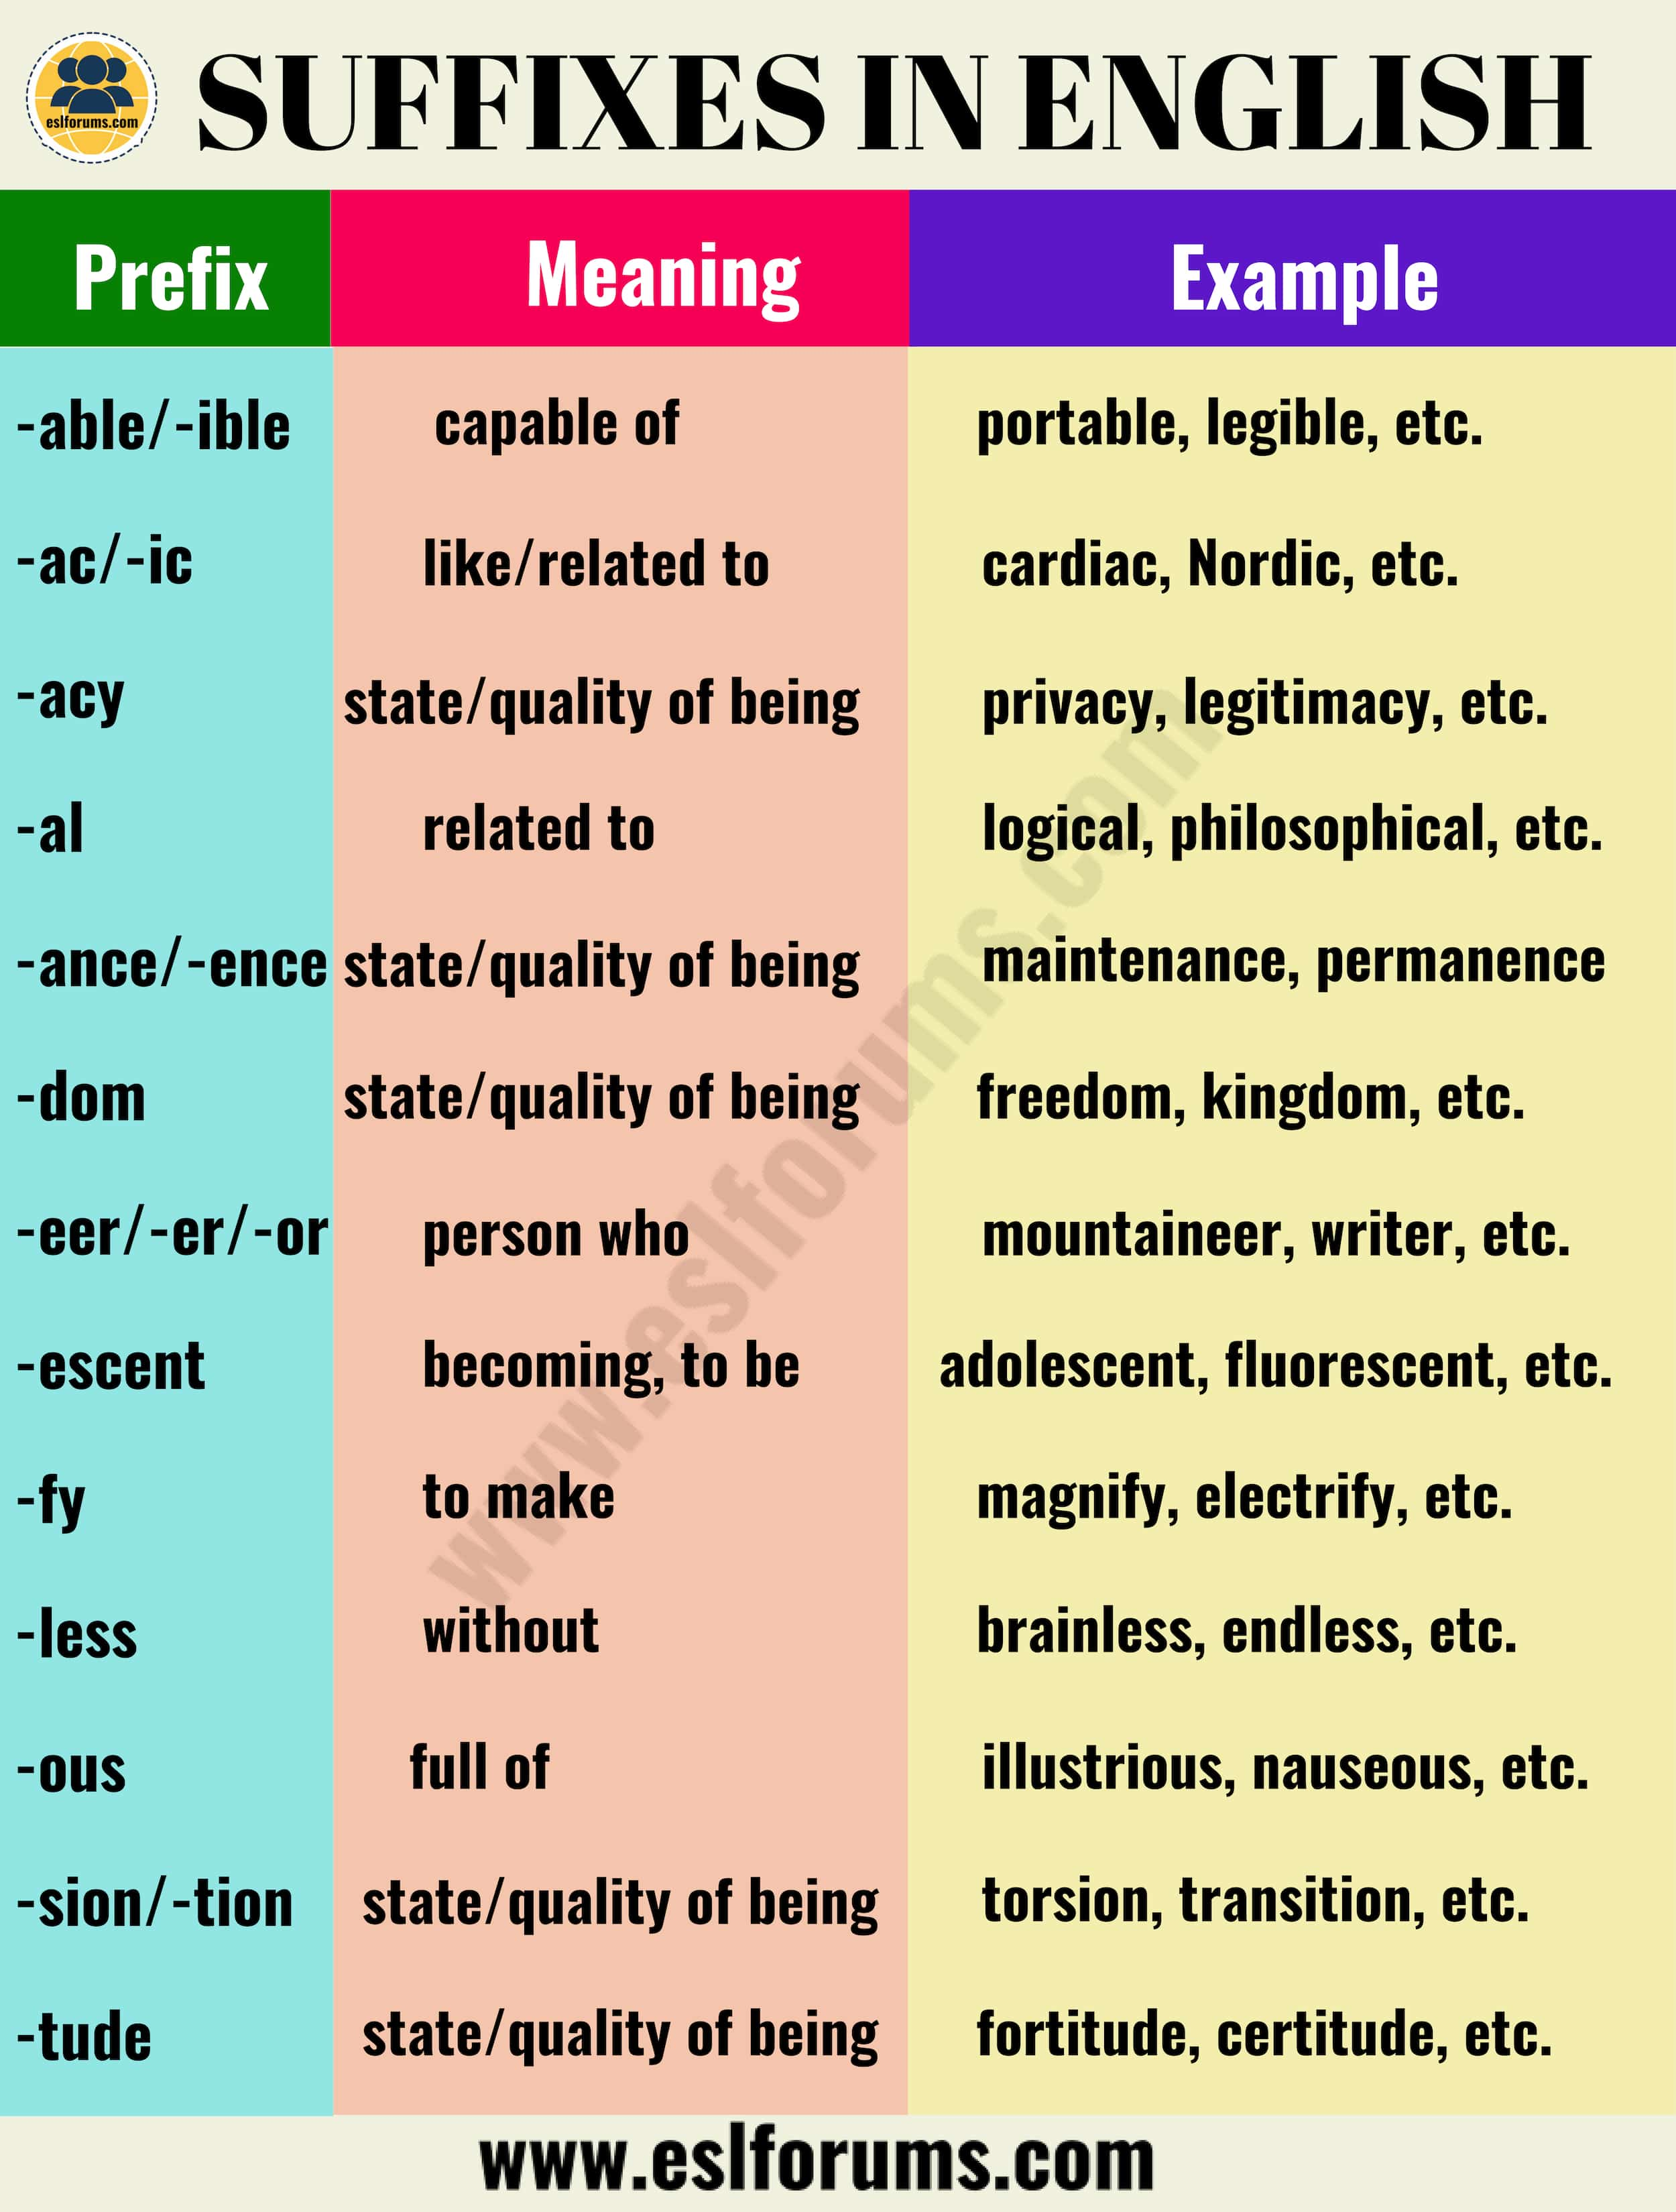 List of 30+ Most Important Suffixes in English with their Meanings